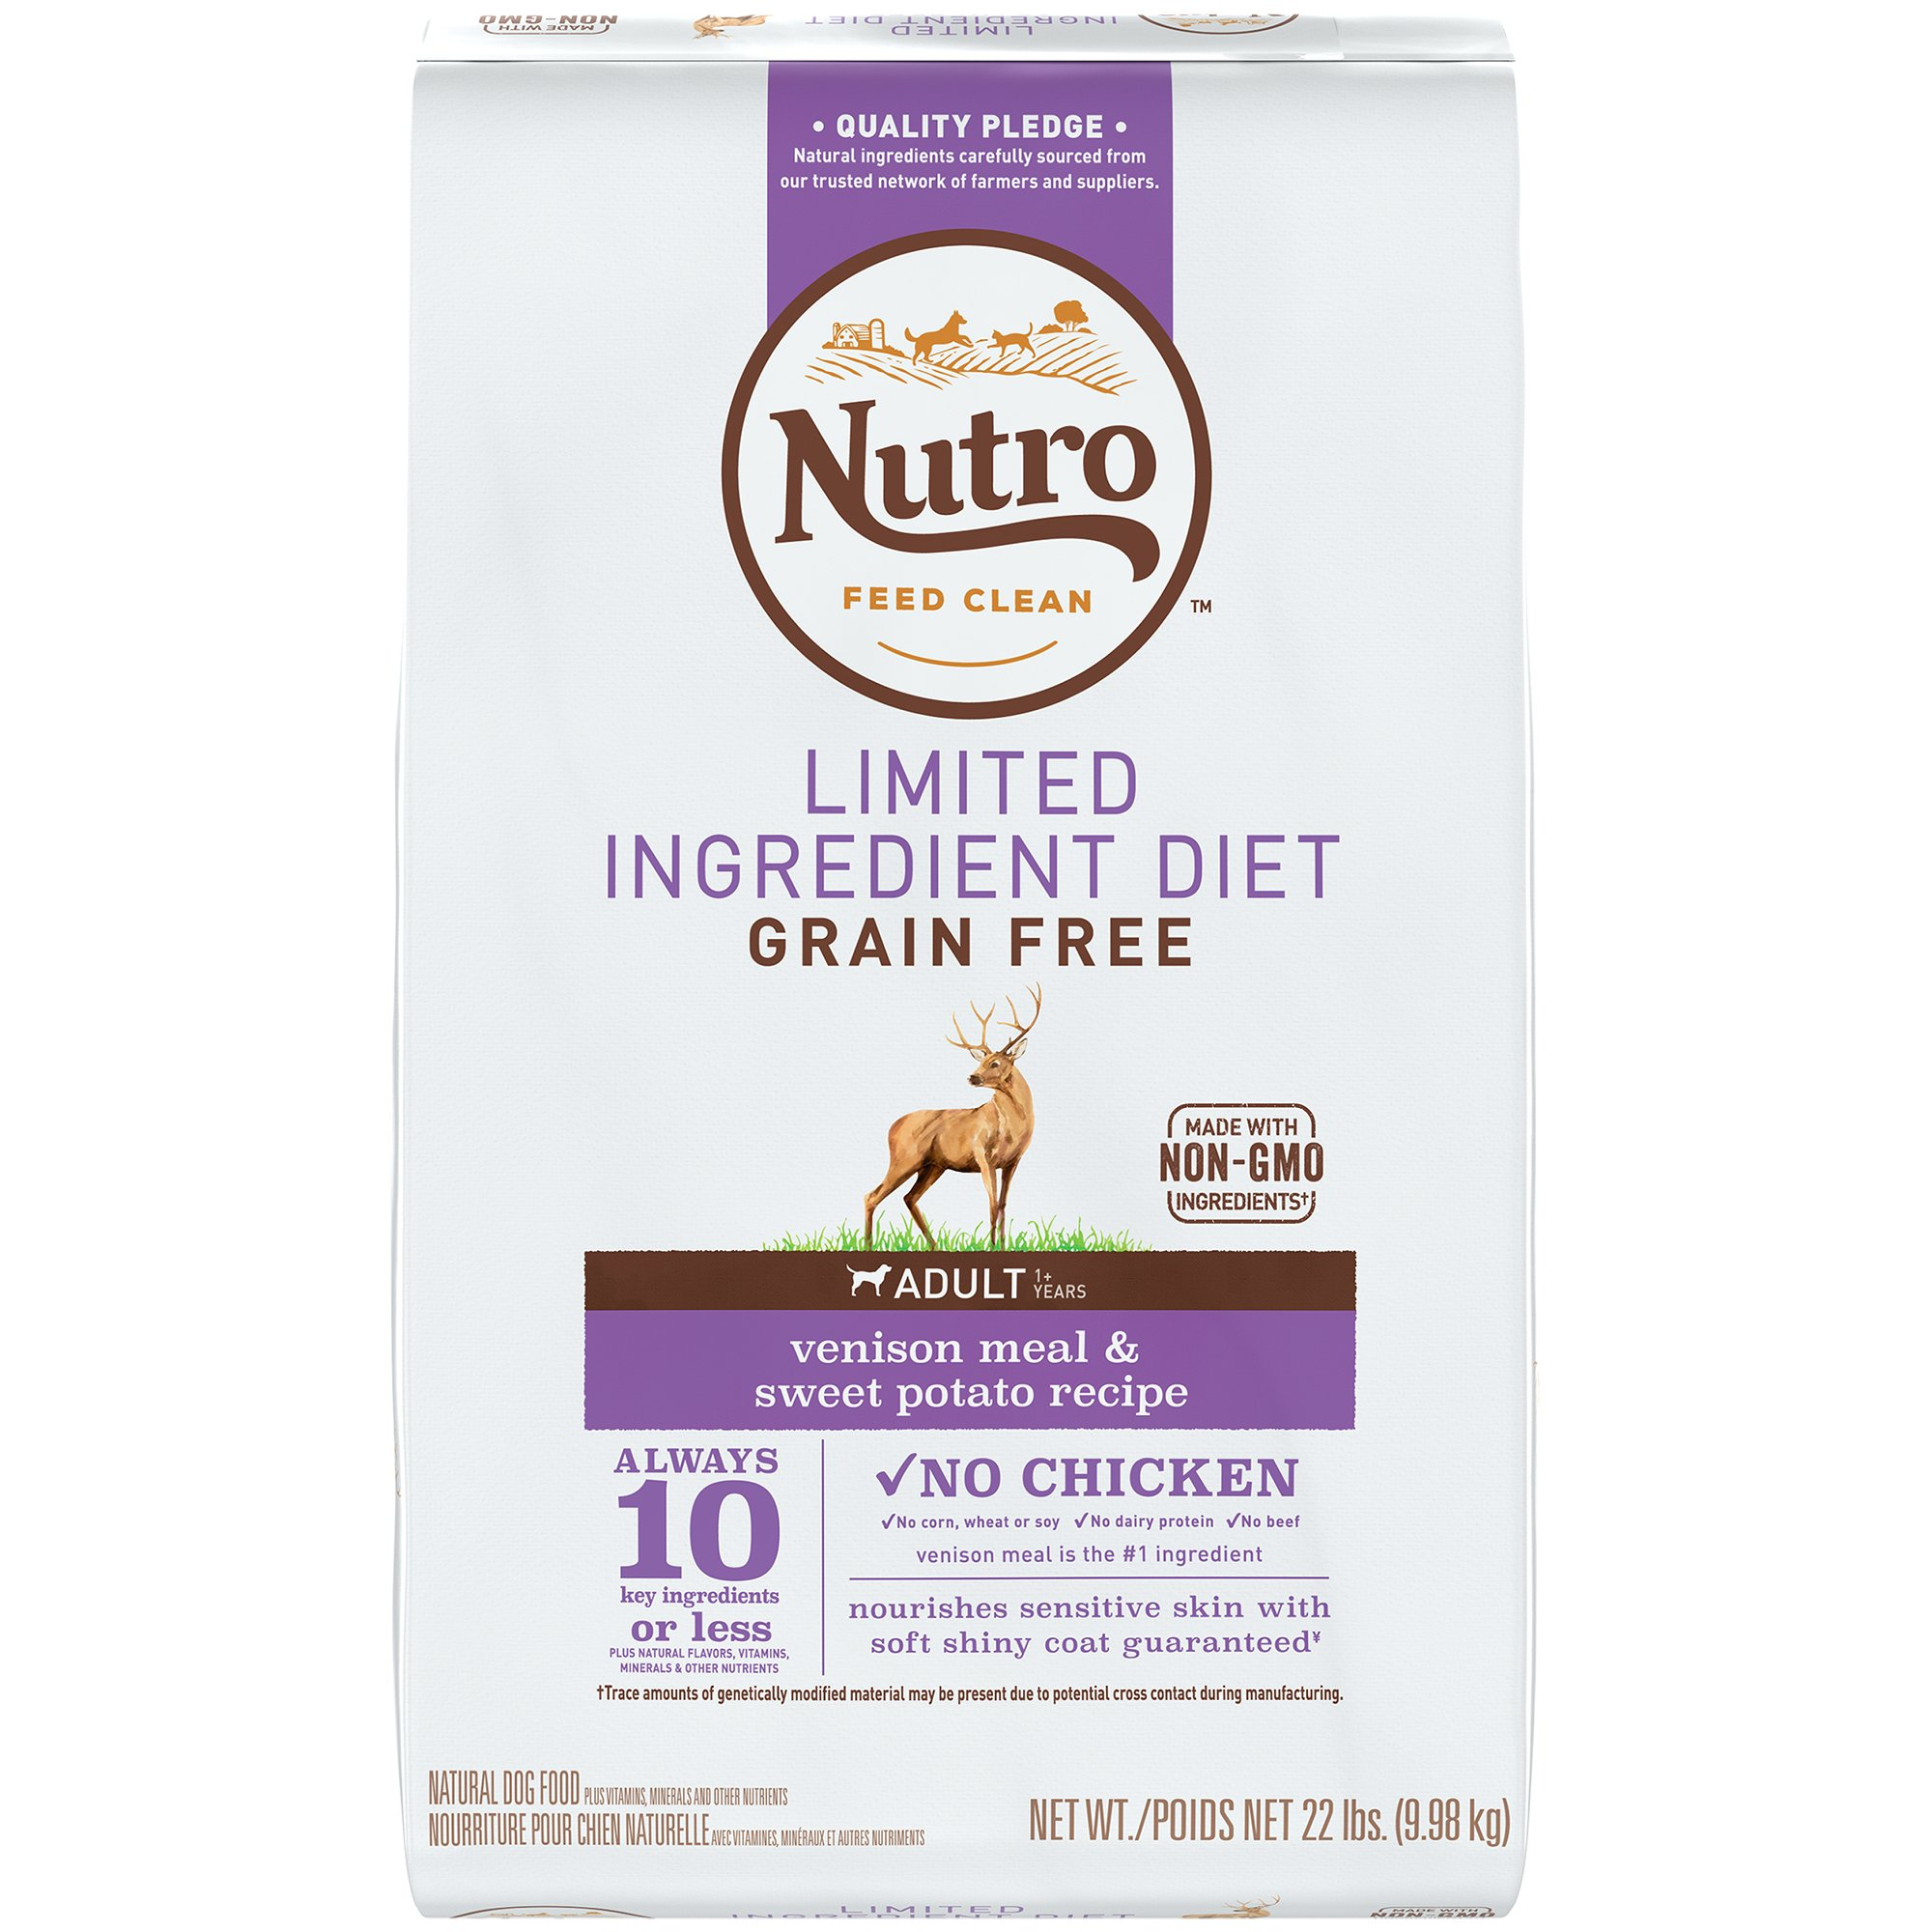 NUTRO Limited Ingredient Diet Adult Venison Meal & Sweet Potato Recipe Grain Free Dog Food (1) 22-lb. , 10 Key Ingredients or Less Plus Natural Flavors, Vitamins, Minerals and Other Nutrients